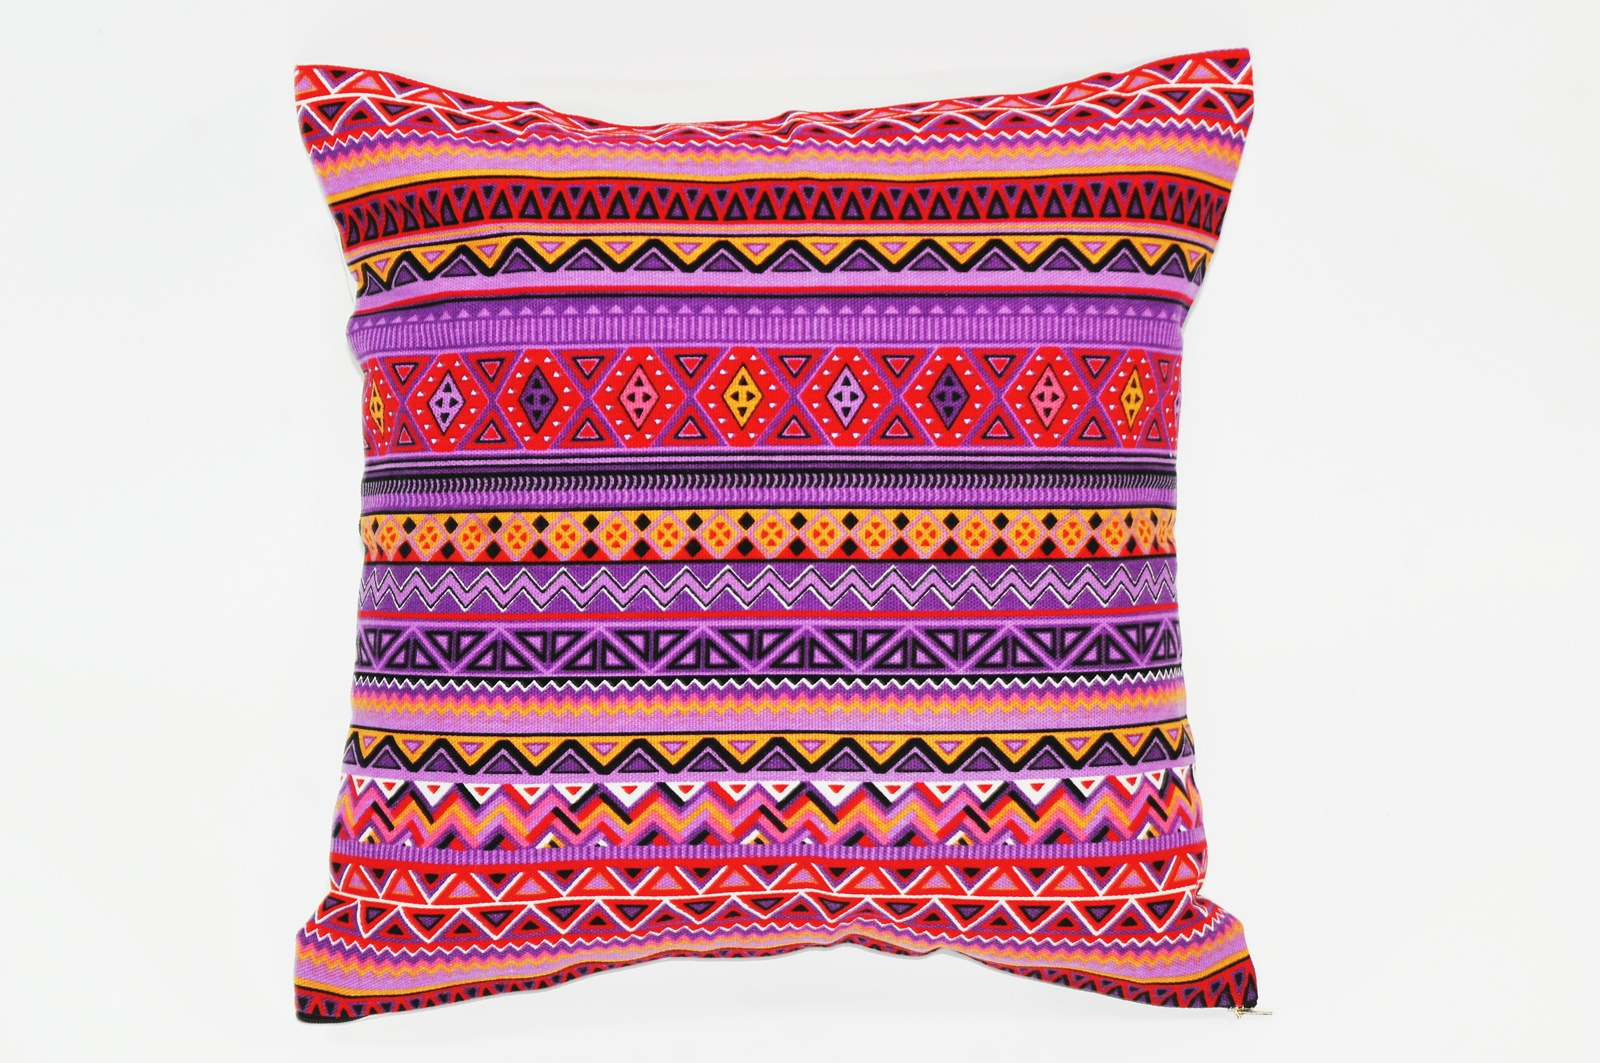 Cushion Cover Kanvas Tribal Ungu Sarung Bantal Sarung Bantal Sofa